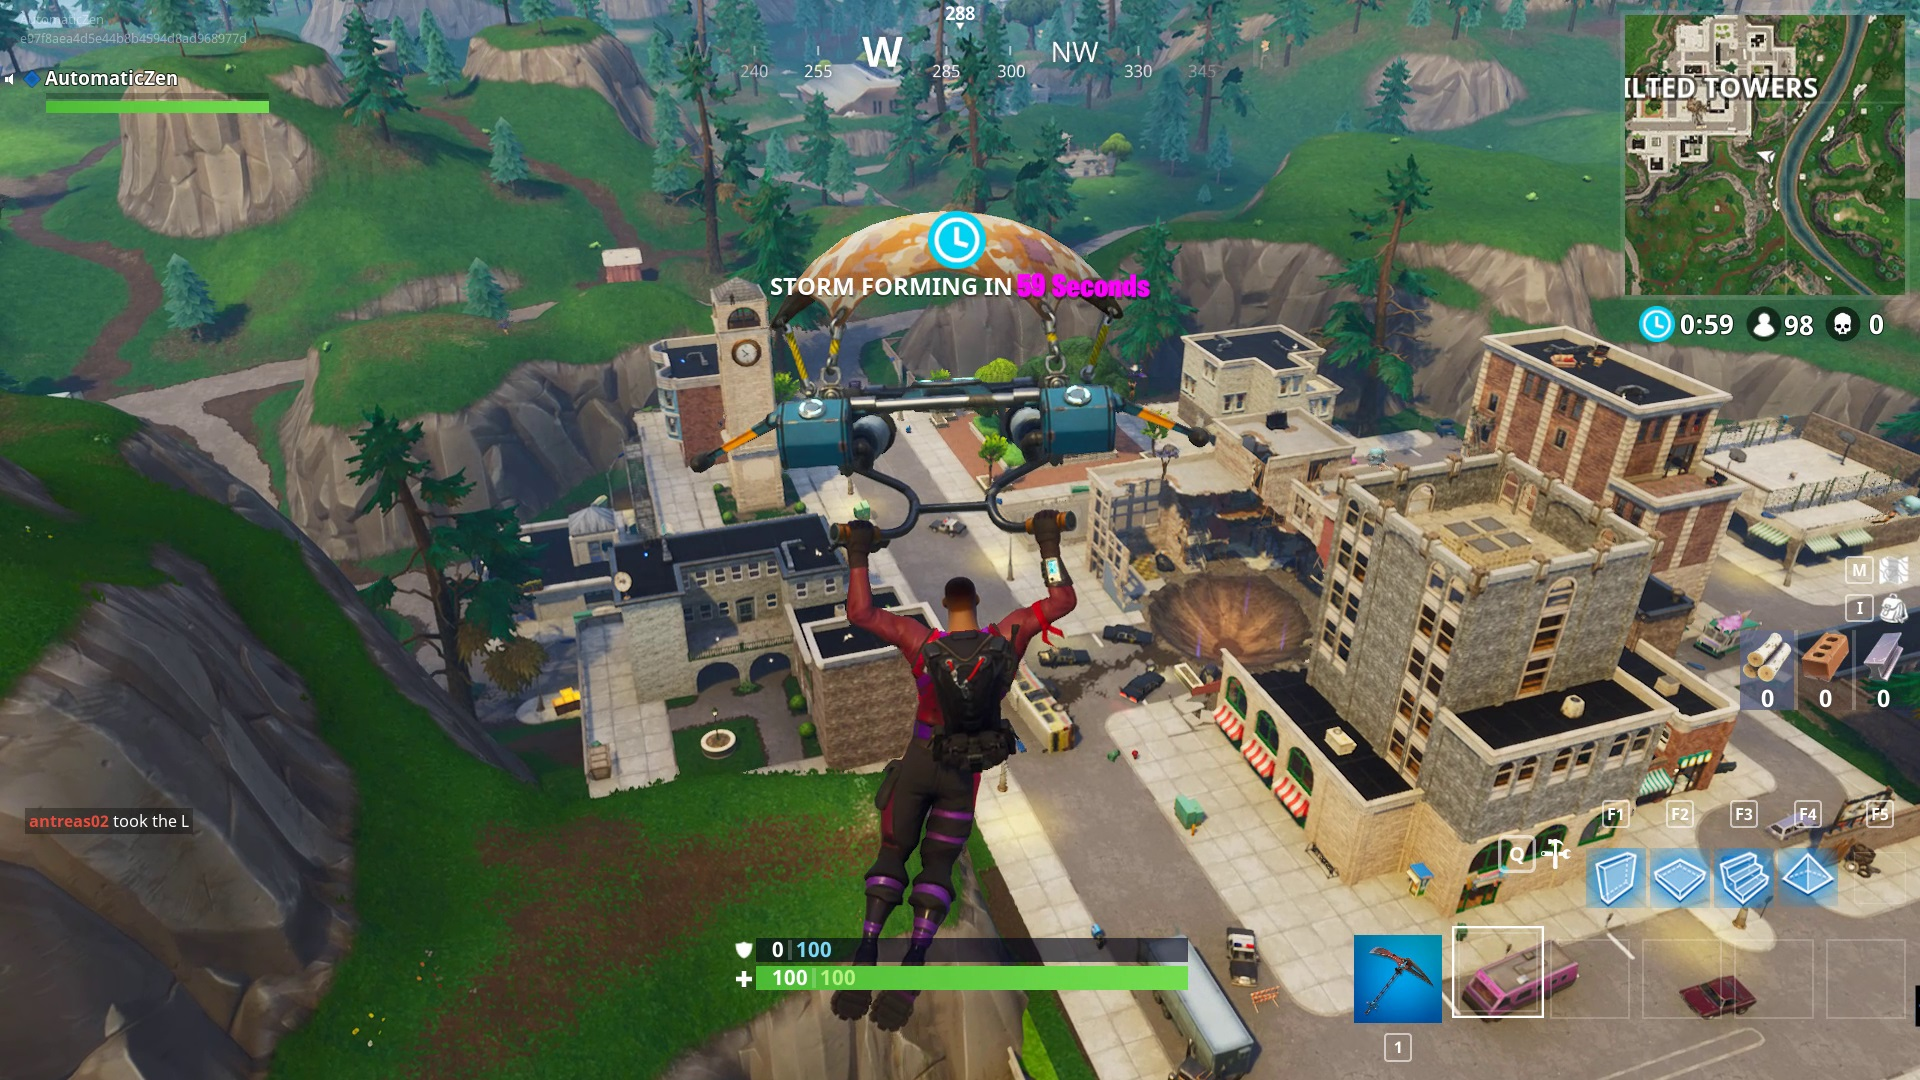 tilted towers is still there - all changes in fortnite season 4